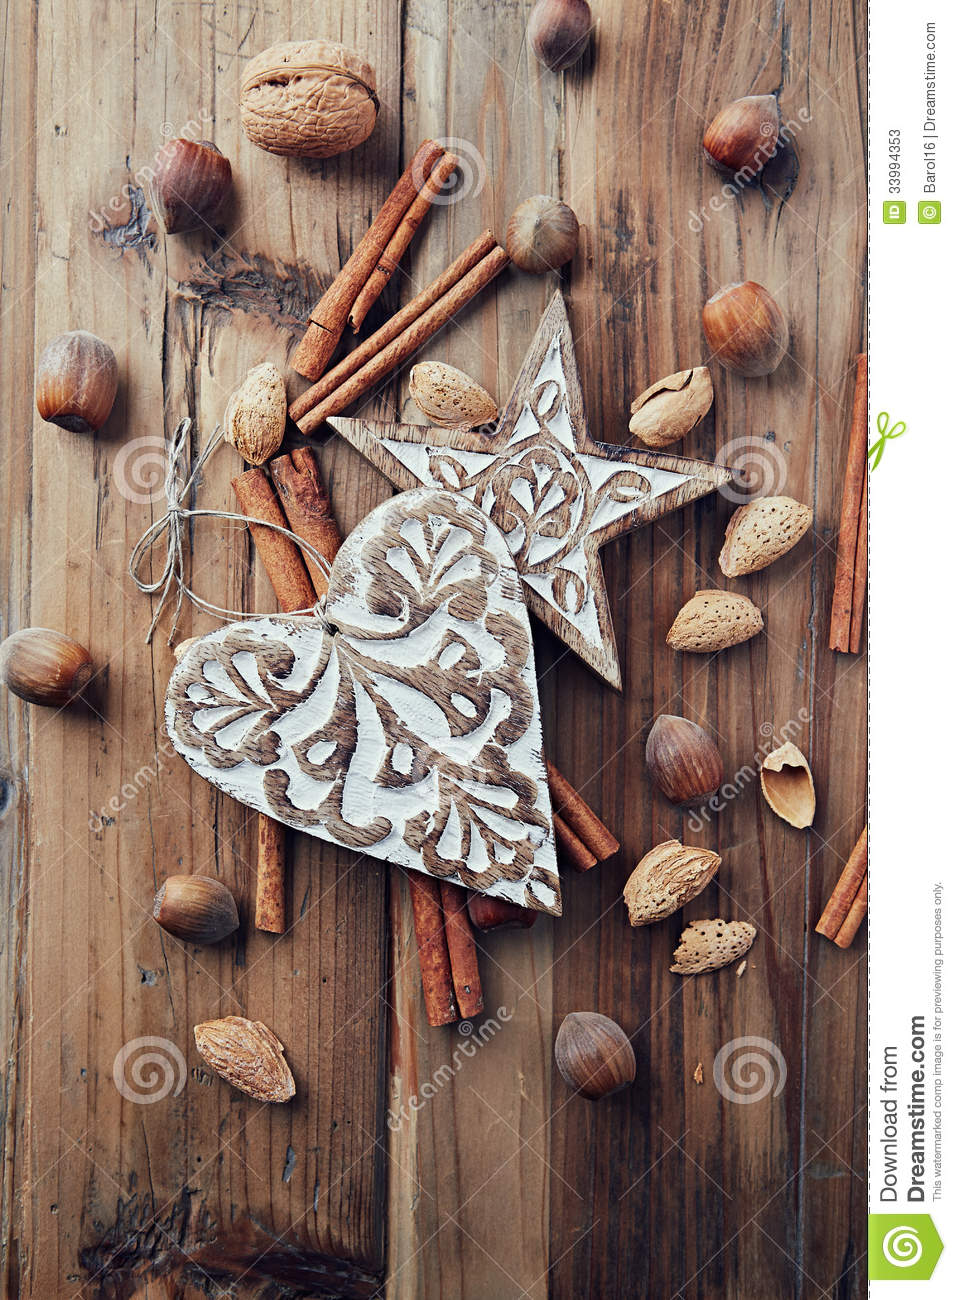 rustic christmas decorations and ingredients for a stock photos - Rustic Christmas Decorations